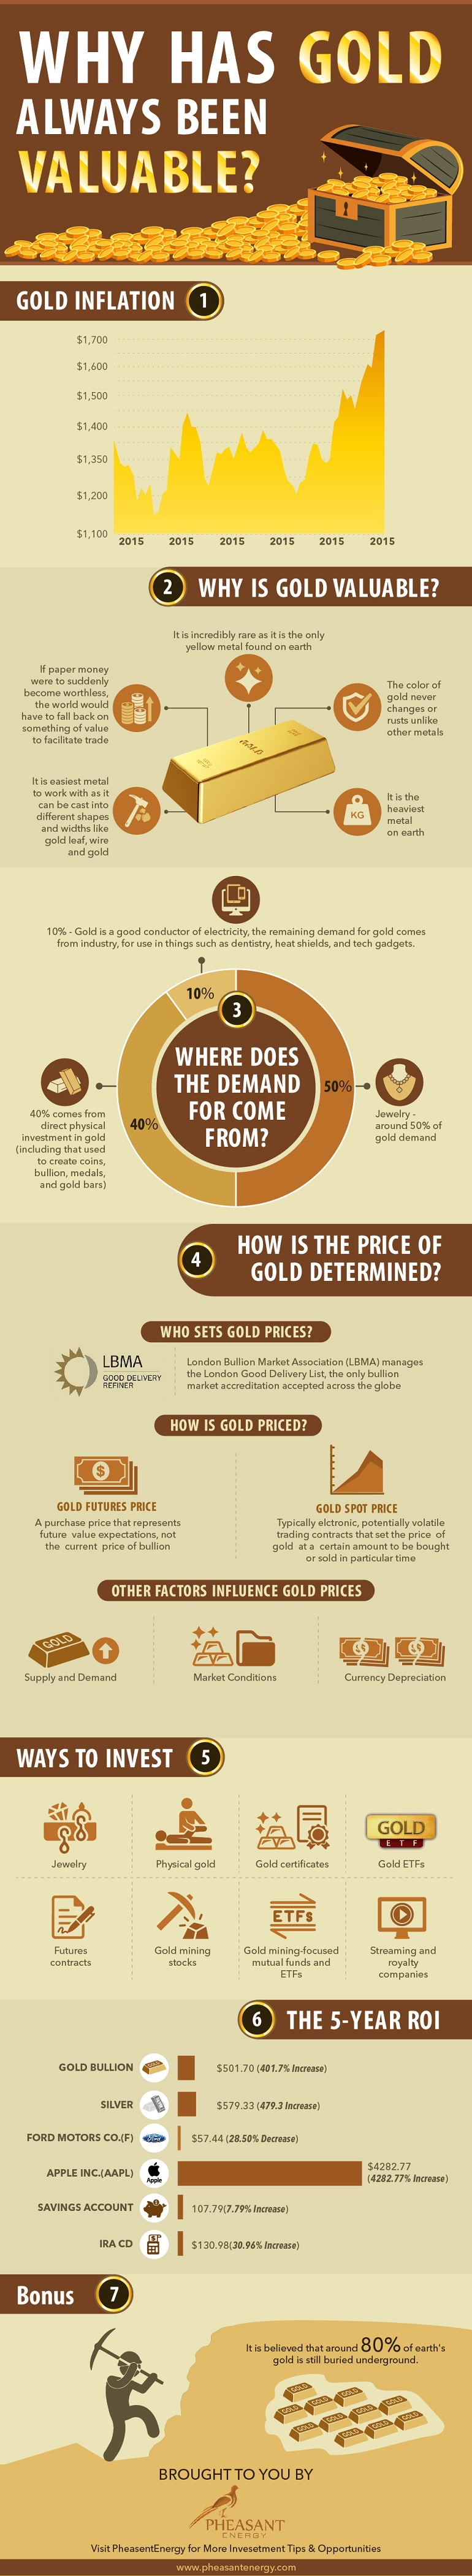 Infographic describing the 8 Best Ways to Invest in Gold